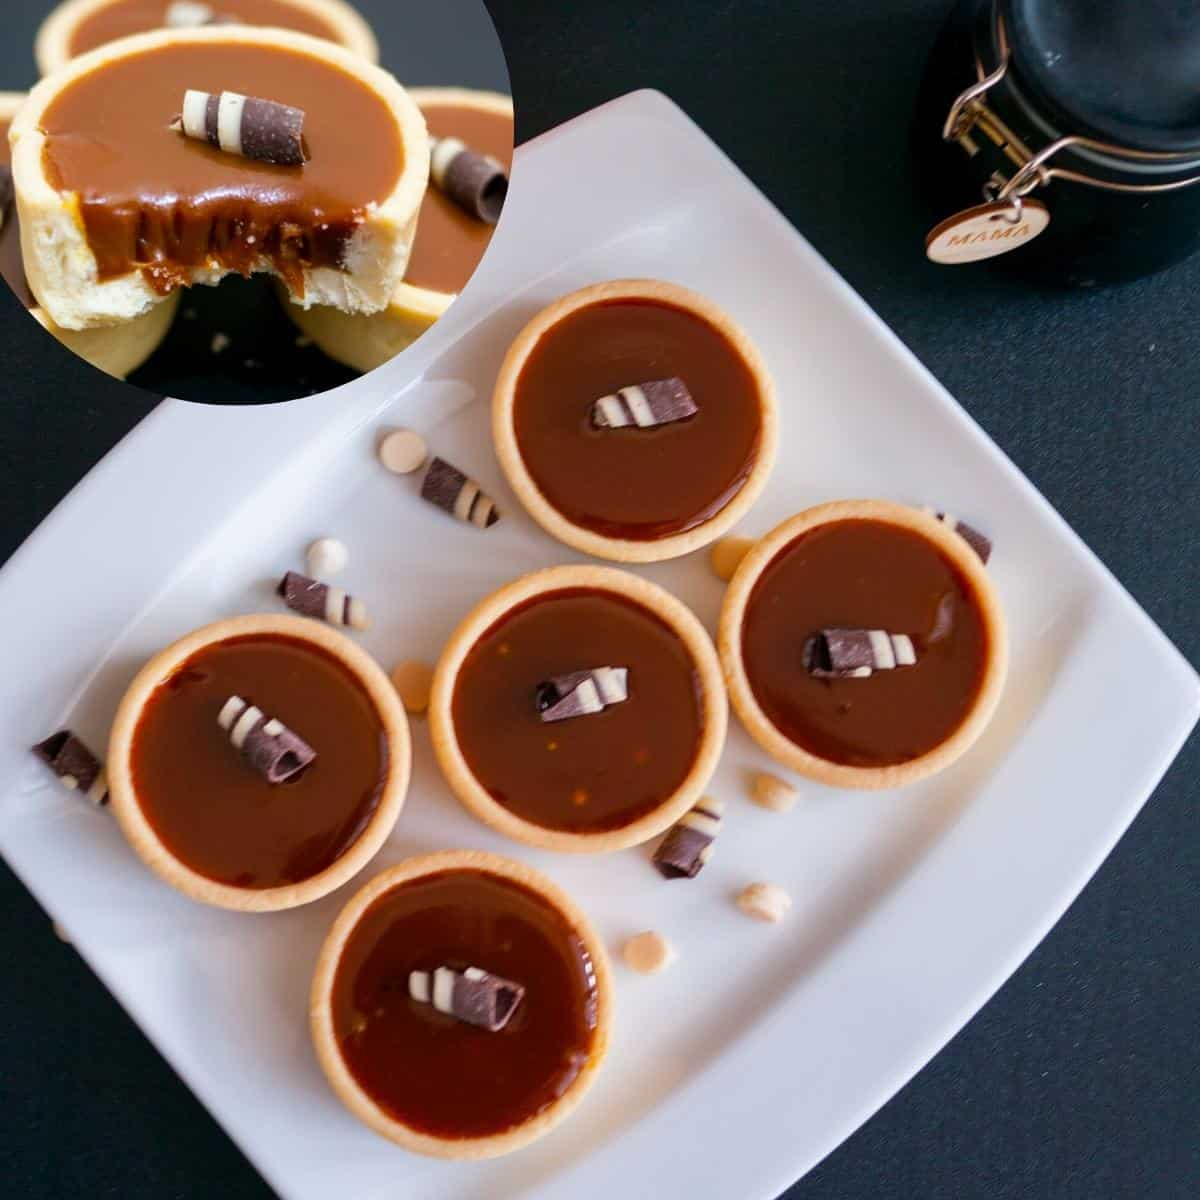 Mini tarts filled with chocolate caramel filling.